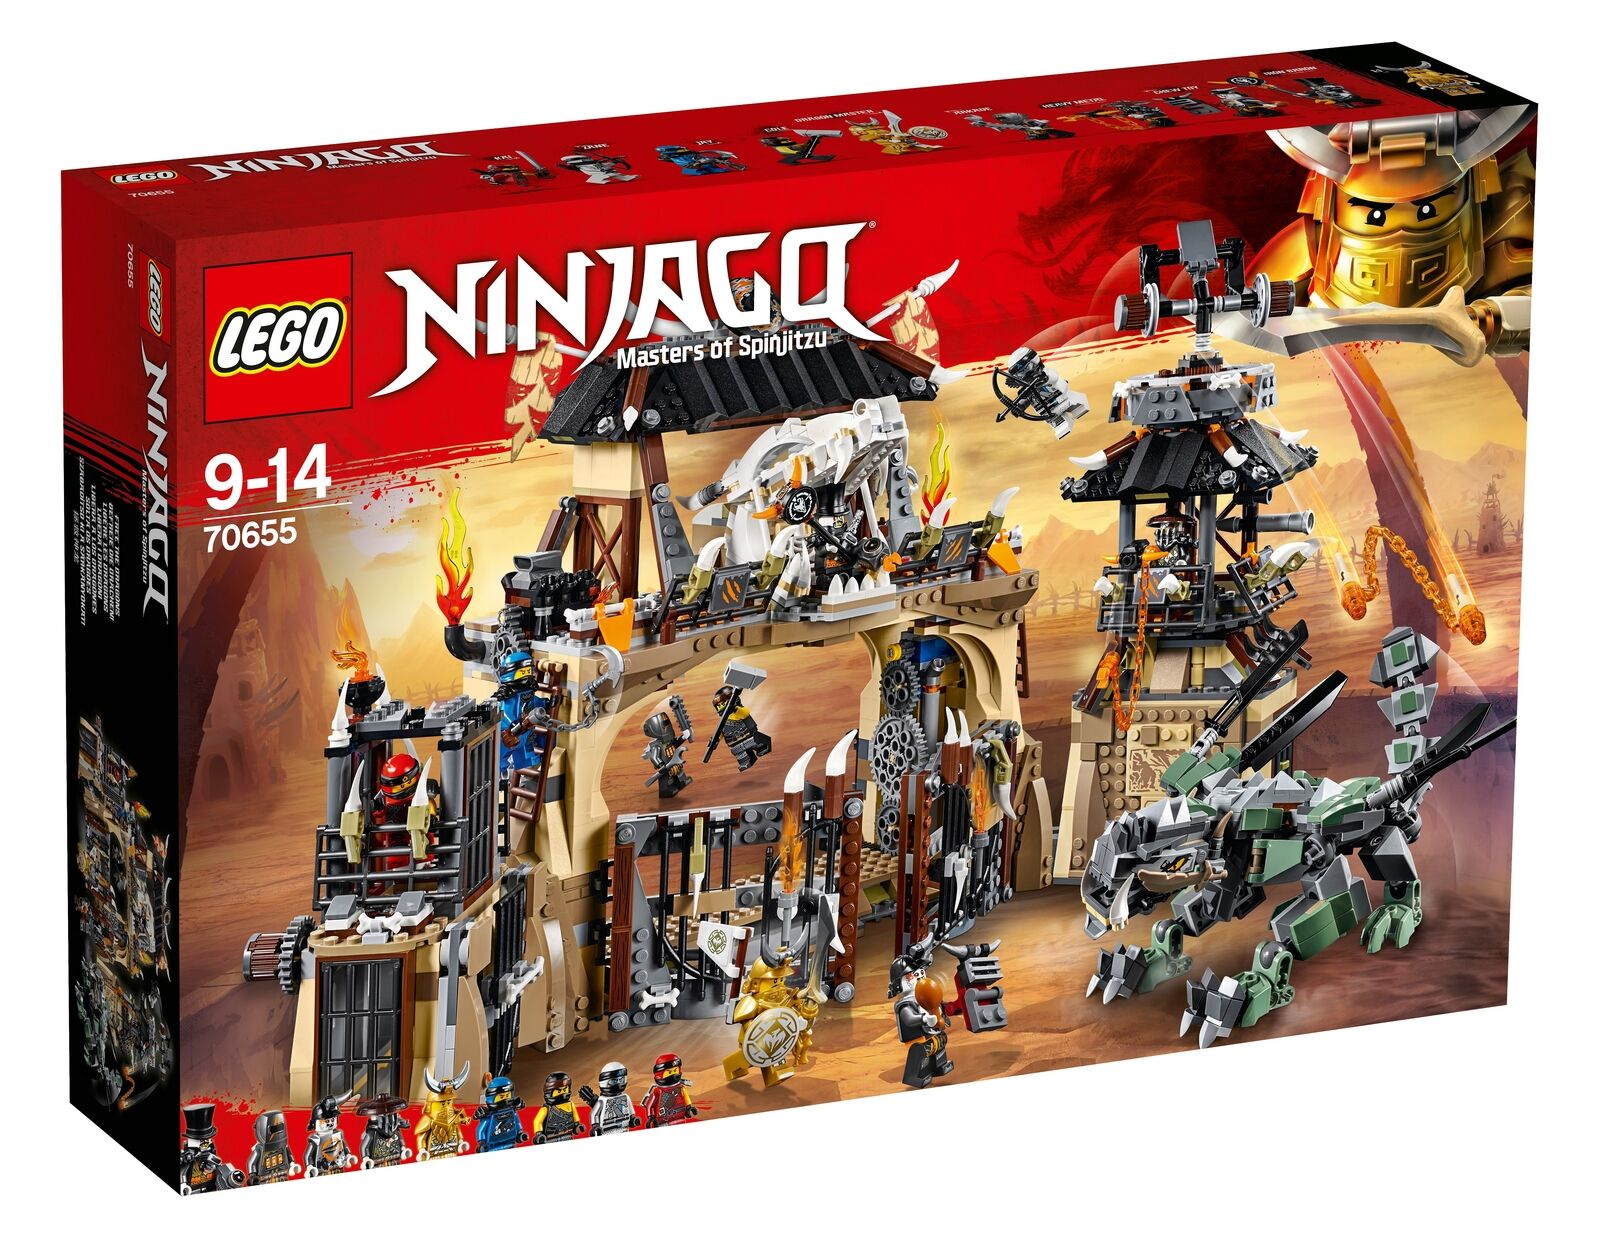 Lego Ninjago Dragon Pit 70655 NIB New Sealed Complete Building Set